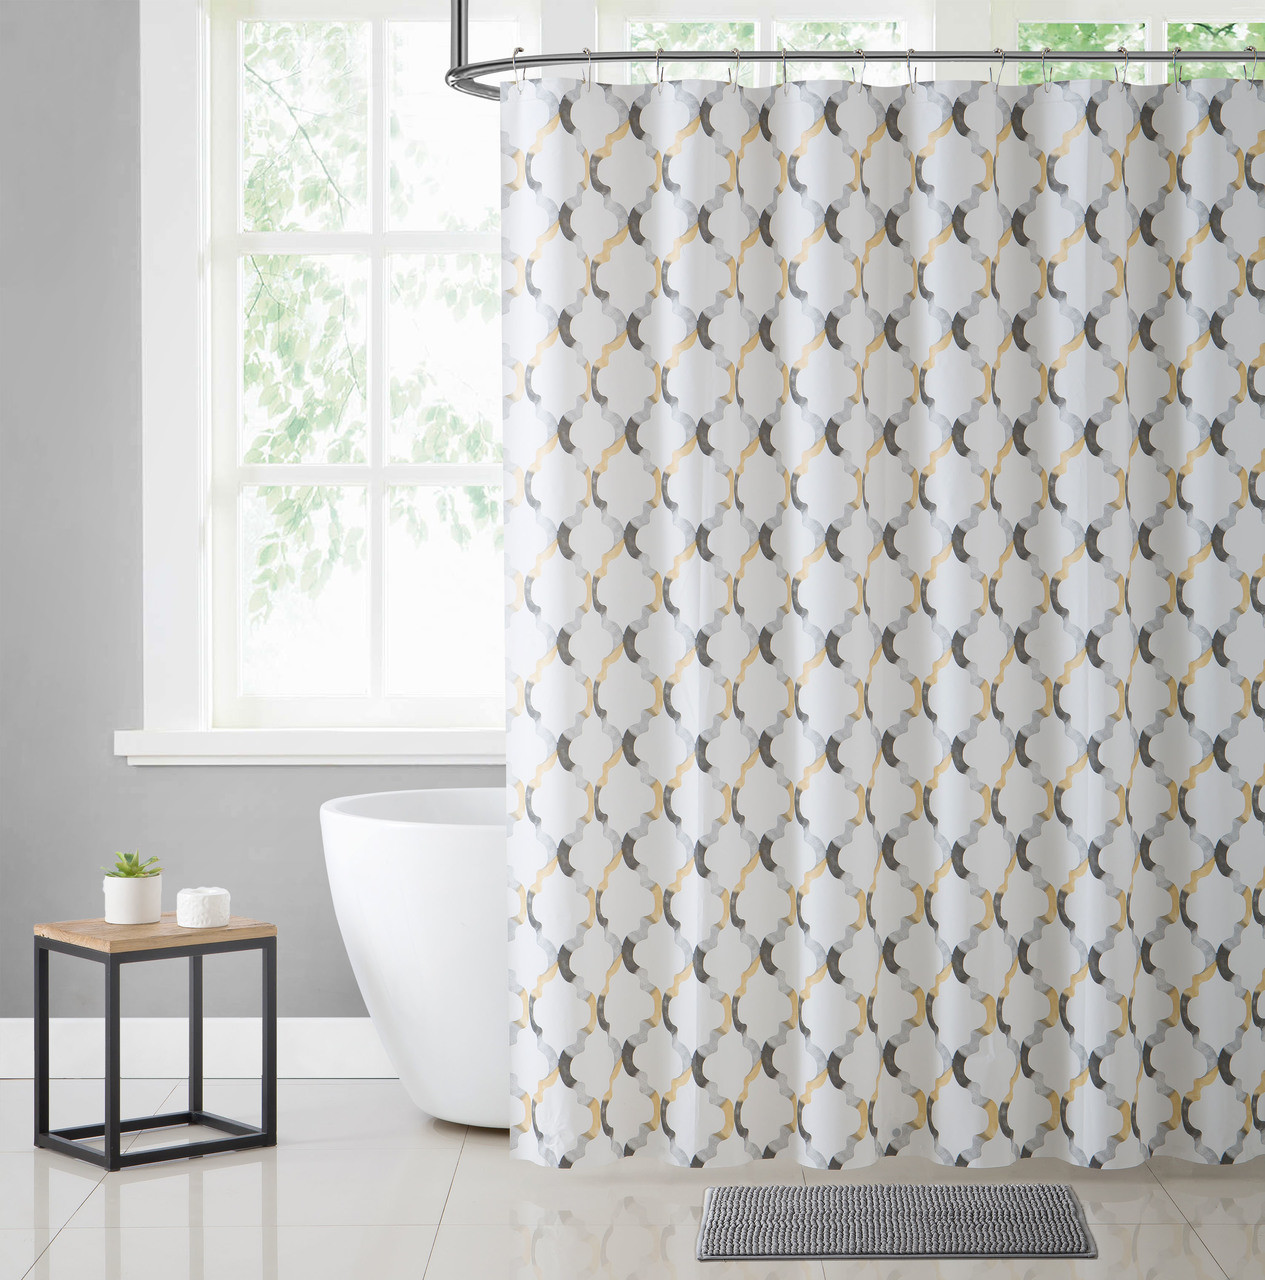 white yellow and gray moroccan tile design peva shower curtain liner odorless pvc and chlorine free biodegradable mildew free eco friendly size